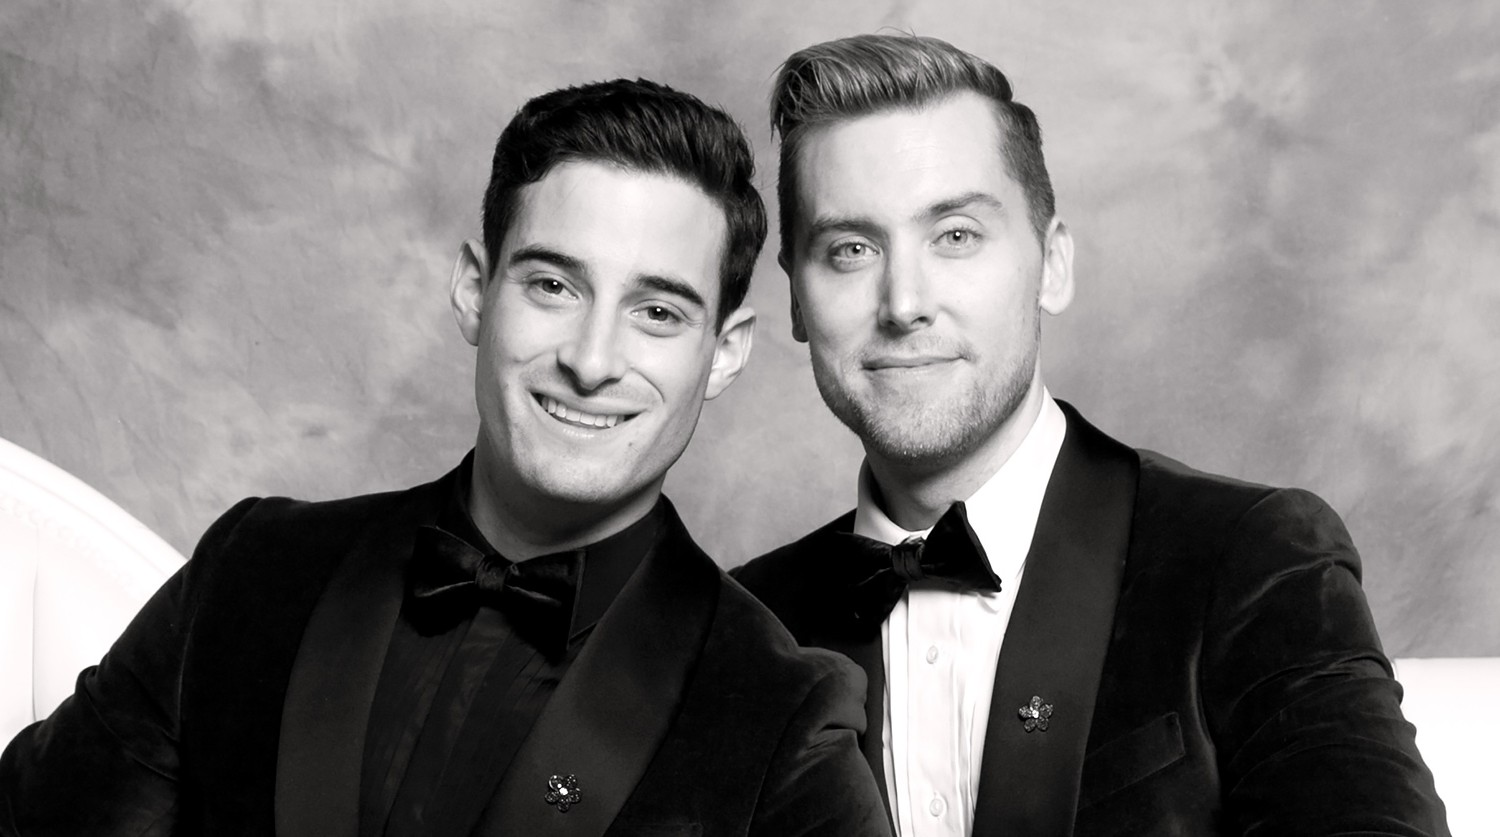 Michael Turchin and Lance Bass got married on December 20, 2014